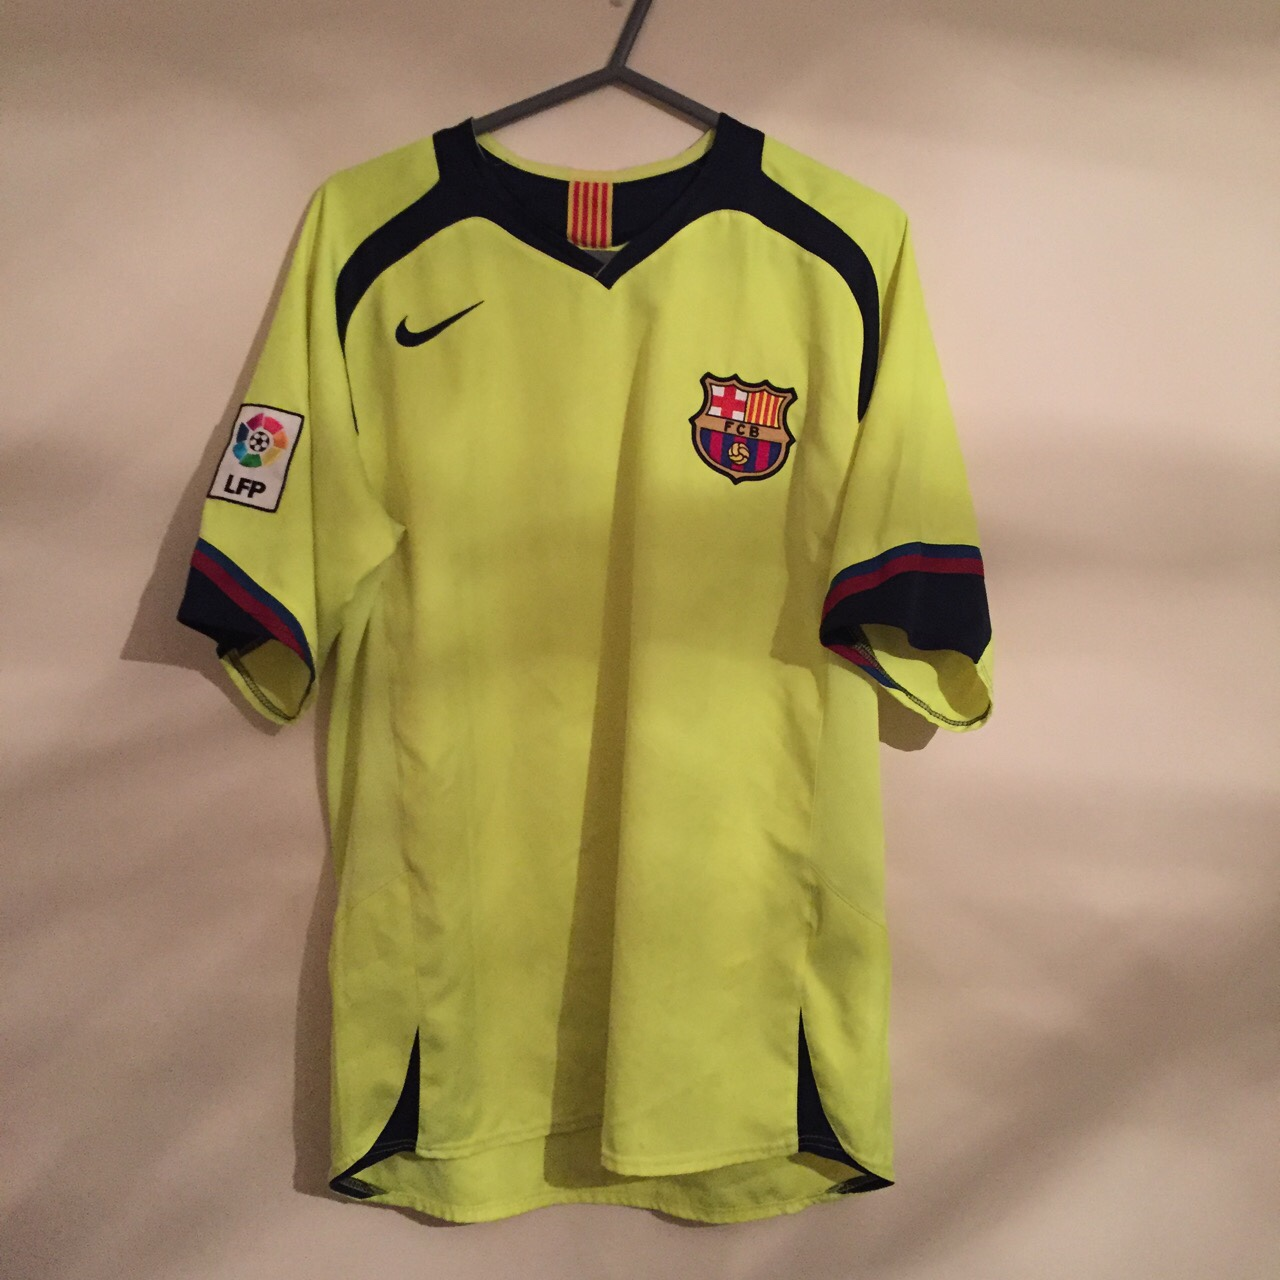 save off 7c203 41e7e Barcelona away kit and training vest from 2005/06... - Depop